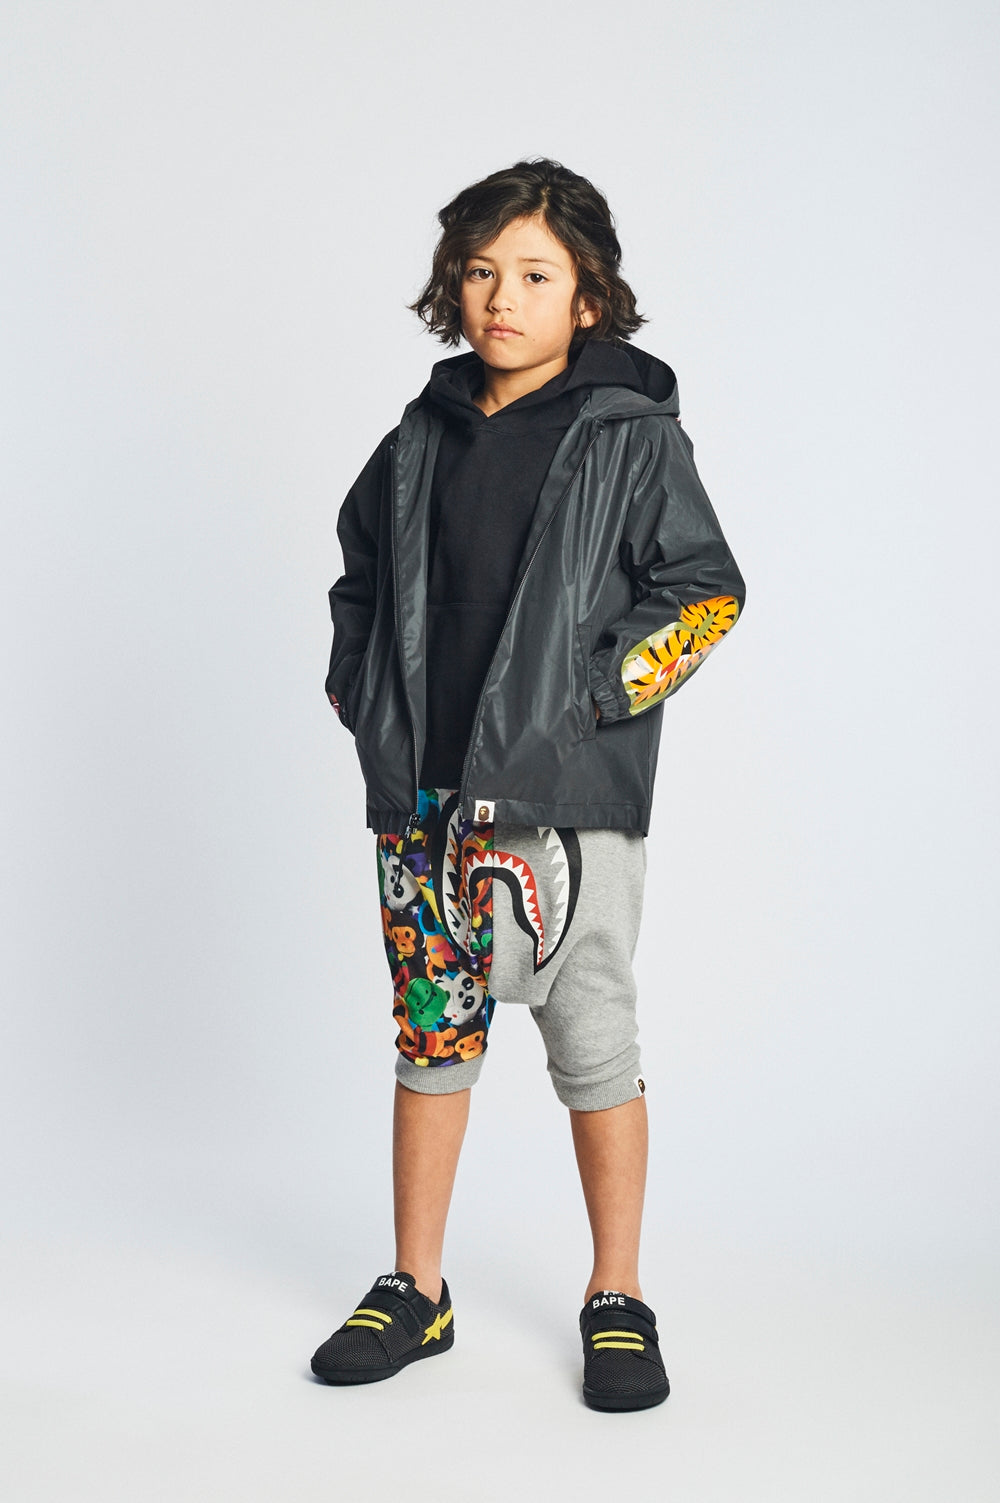 A BATHING APE 2018 SS KIDS' LOOKBOOK 8